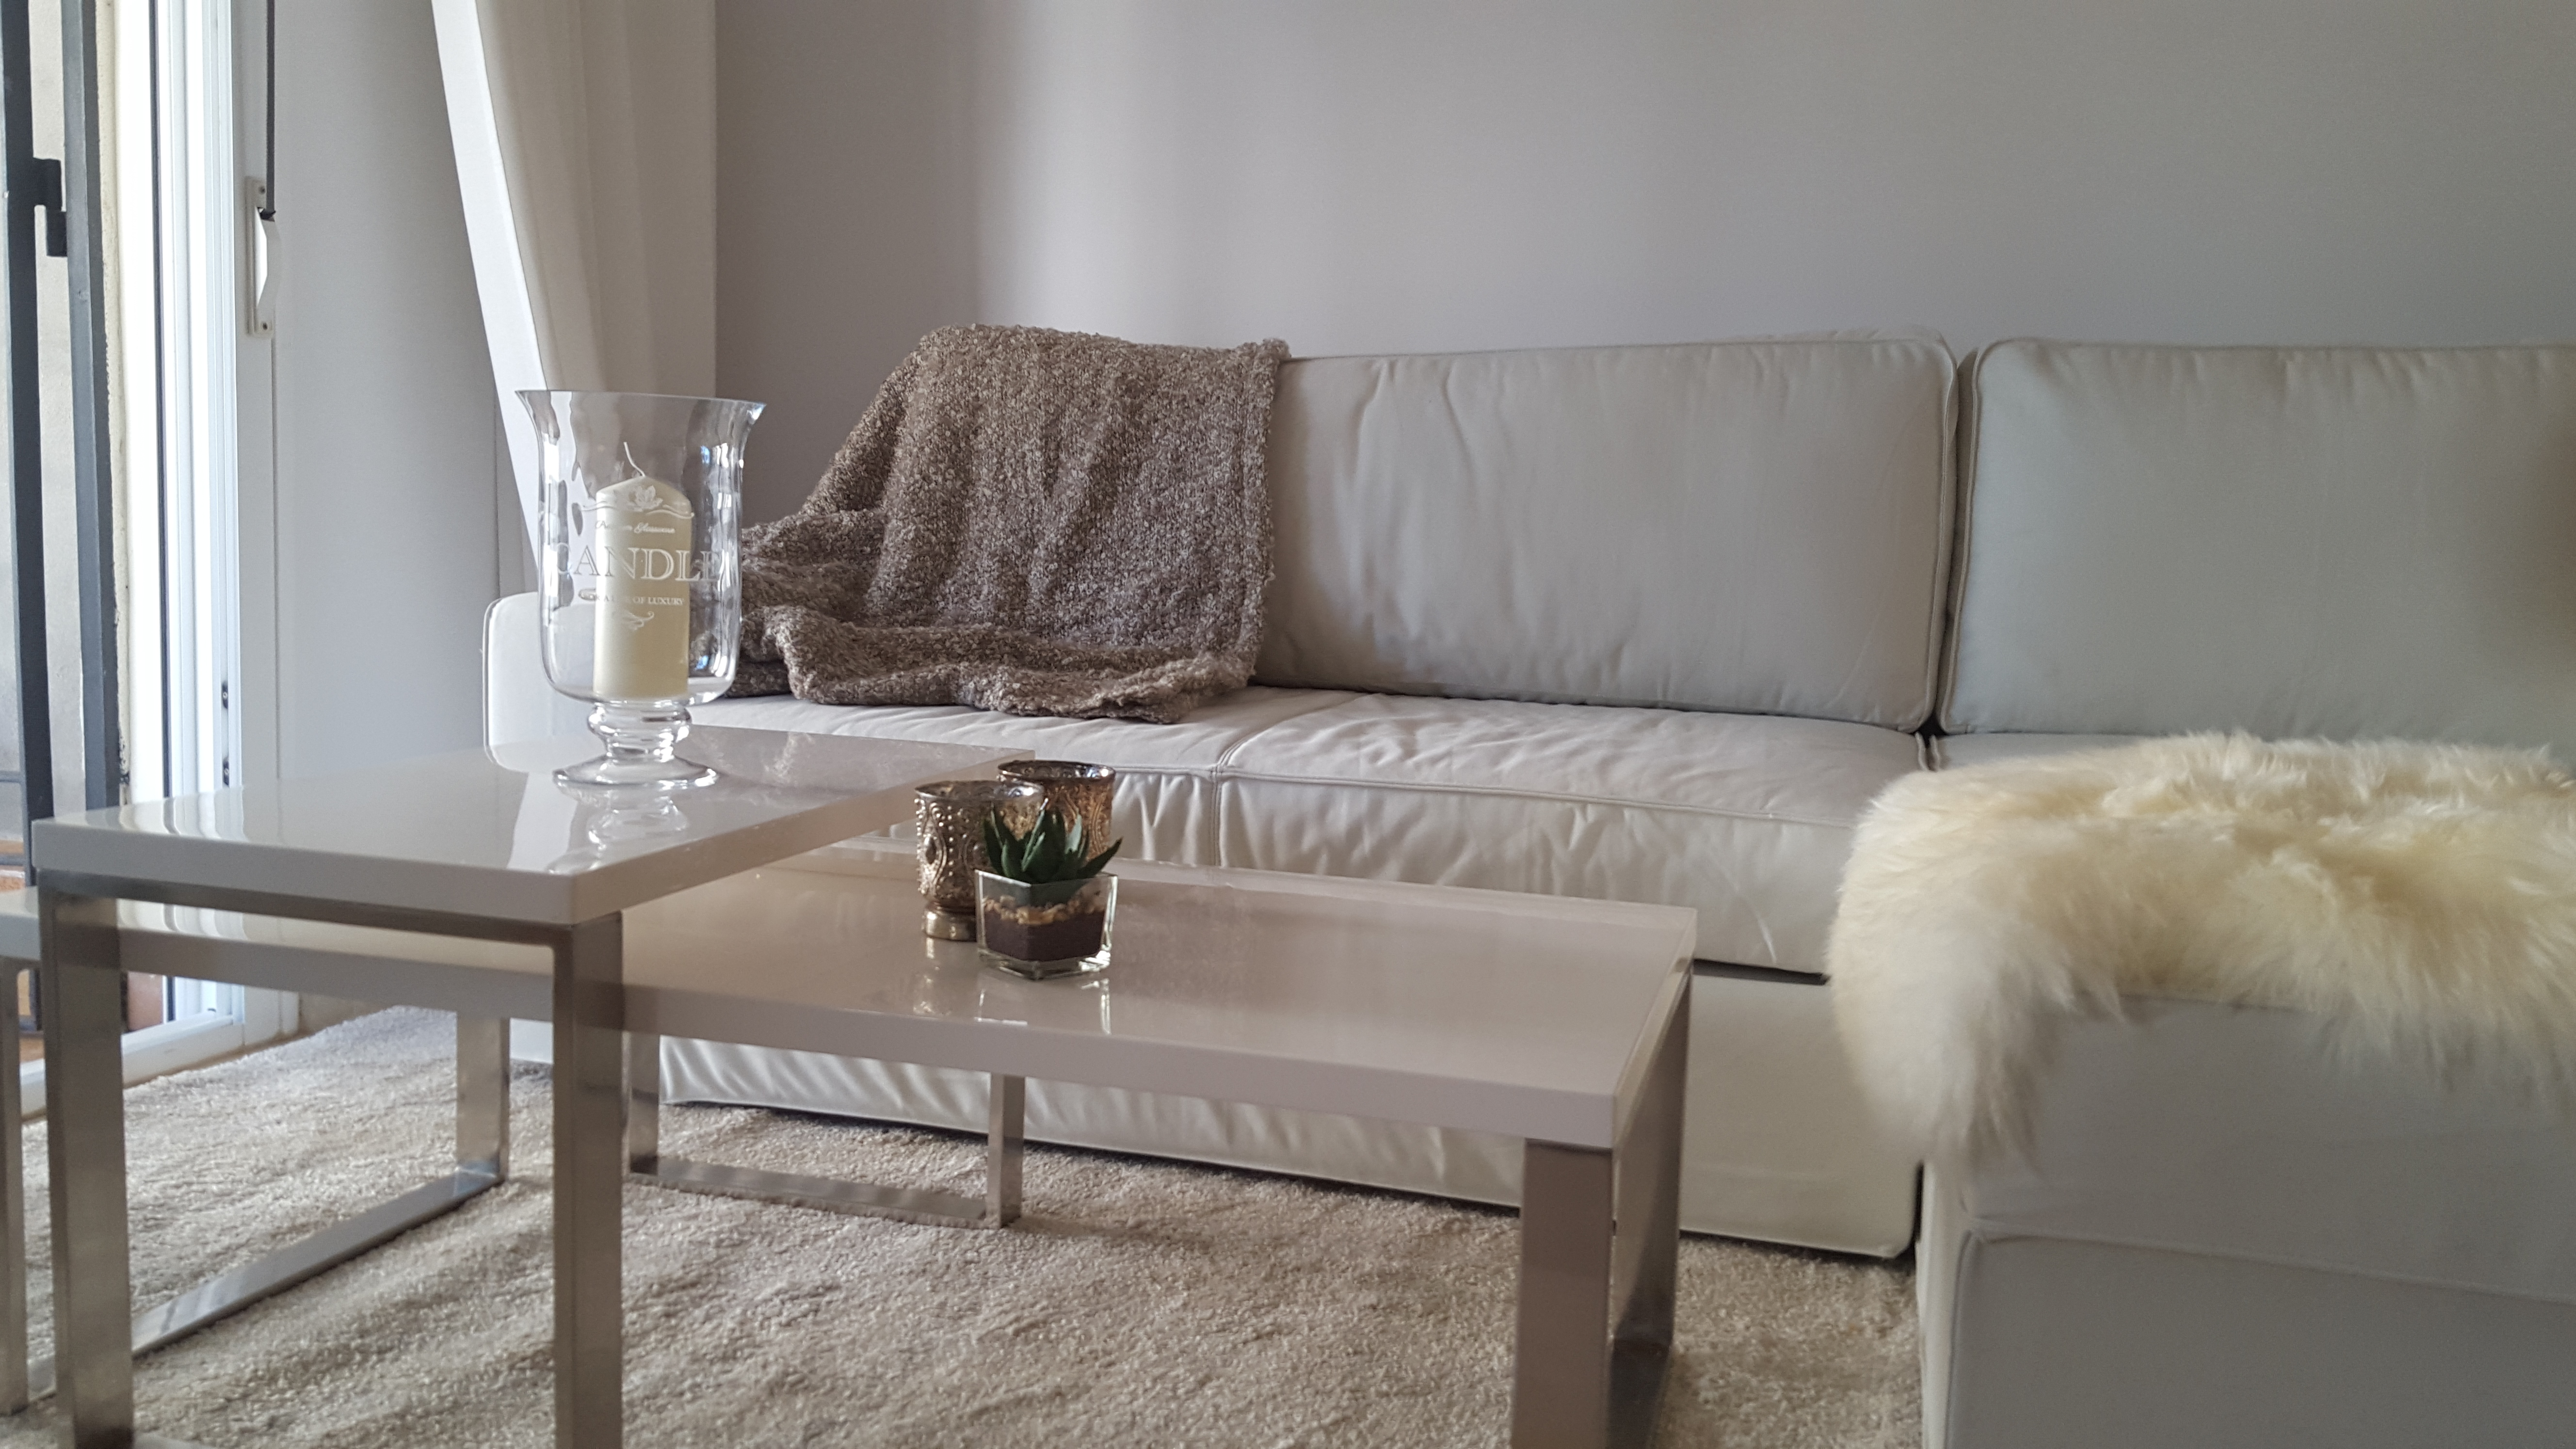 6 + 2-bed apartment with pool and terrace in Fase IV